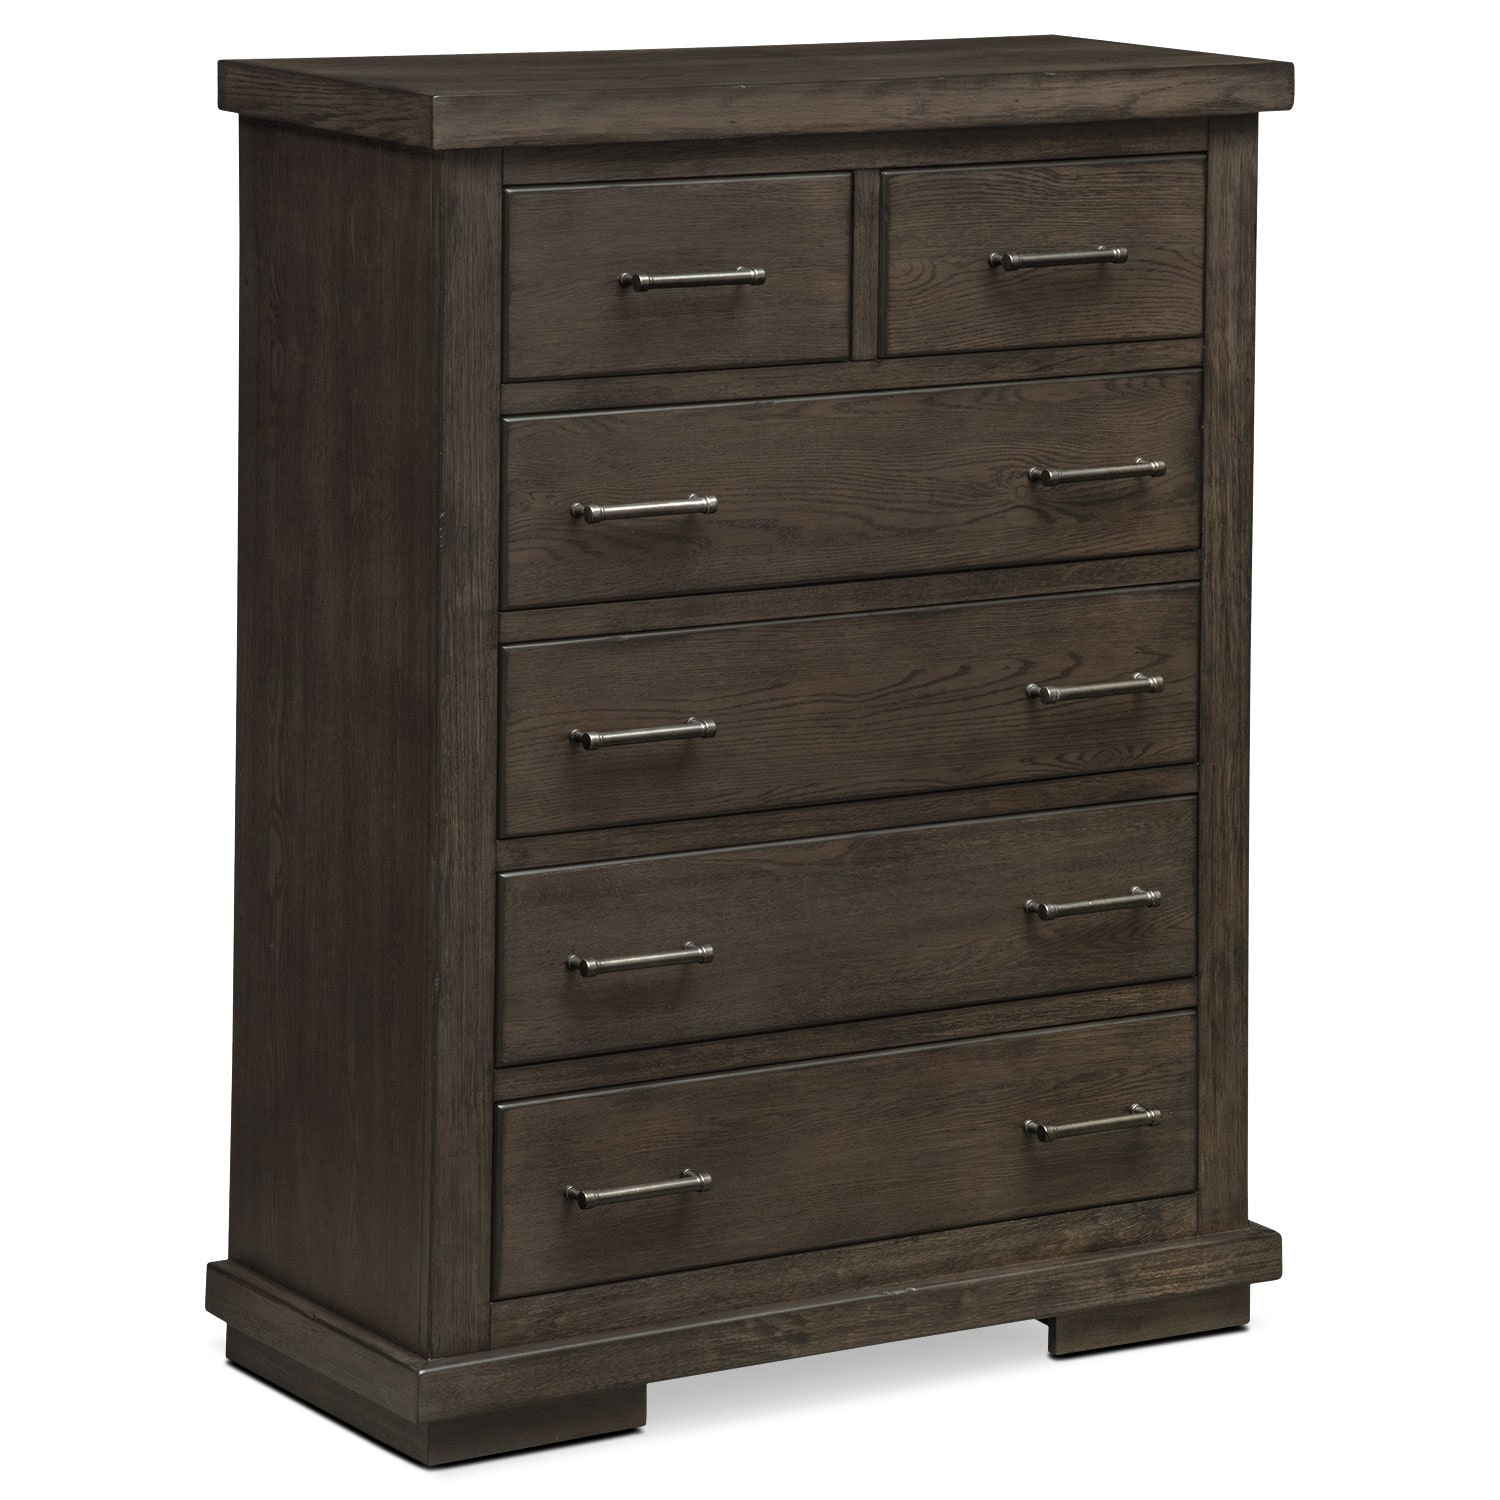 Bedroom Furniture - Jamestown Chest - Sable